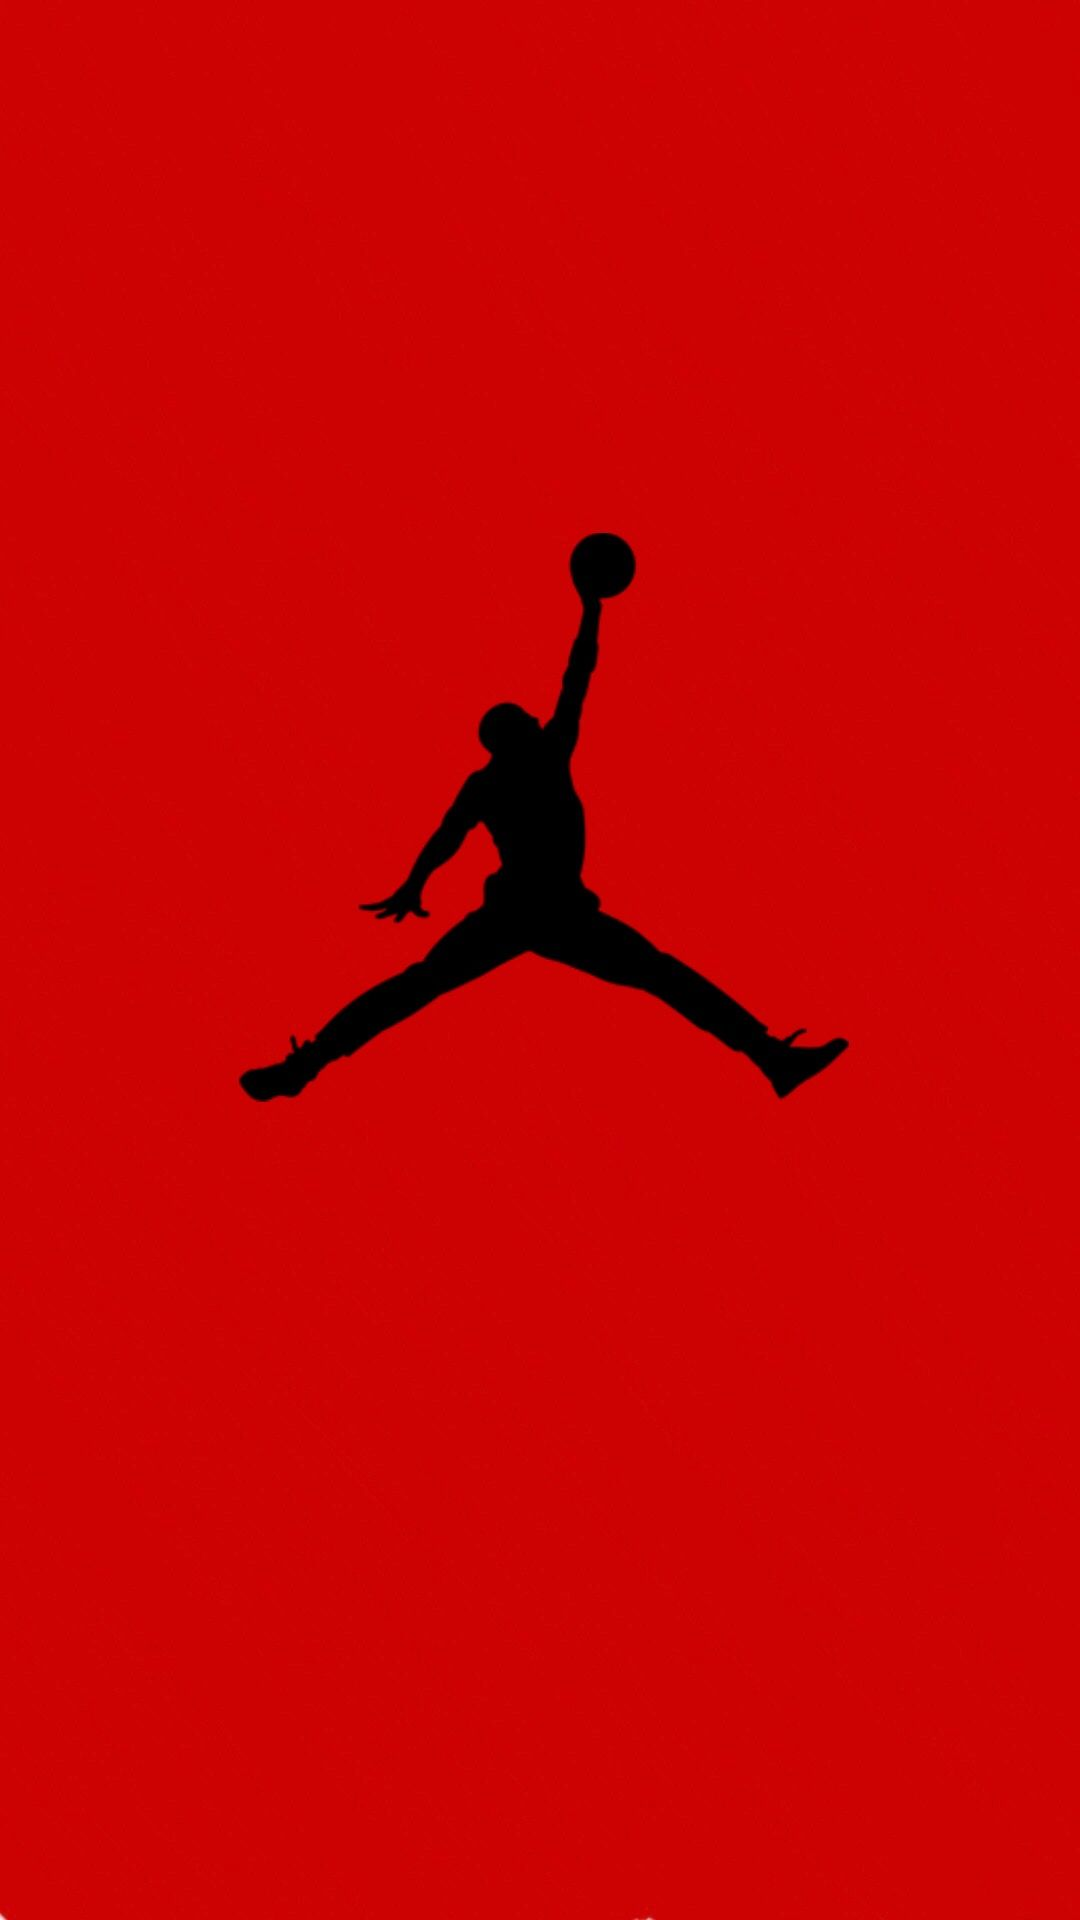 Alivio participar Penetrar  Air jordan logo iphone background | Fondos de pantalla nike, Fondos de  pantalla de iphone, Fondo de iphone